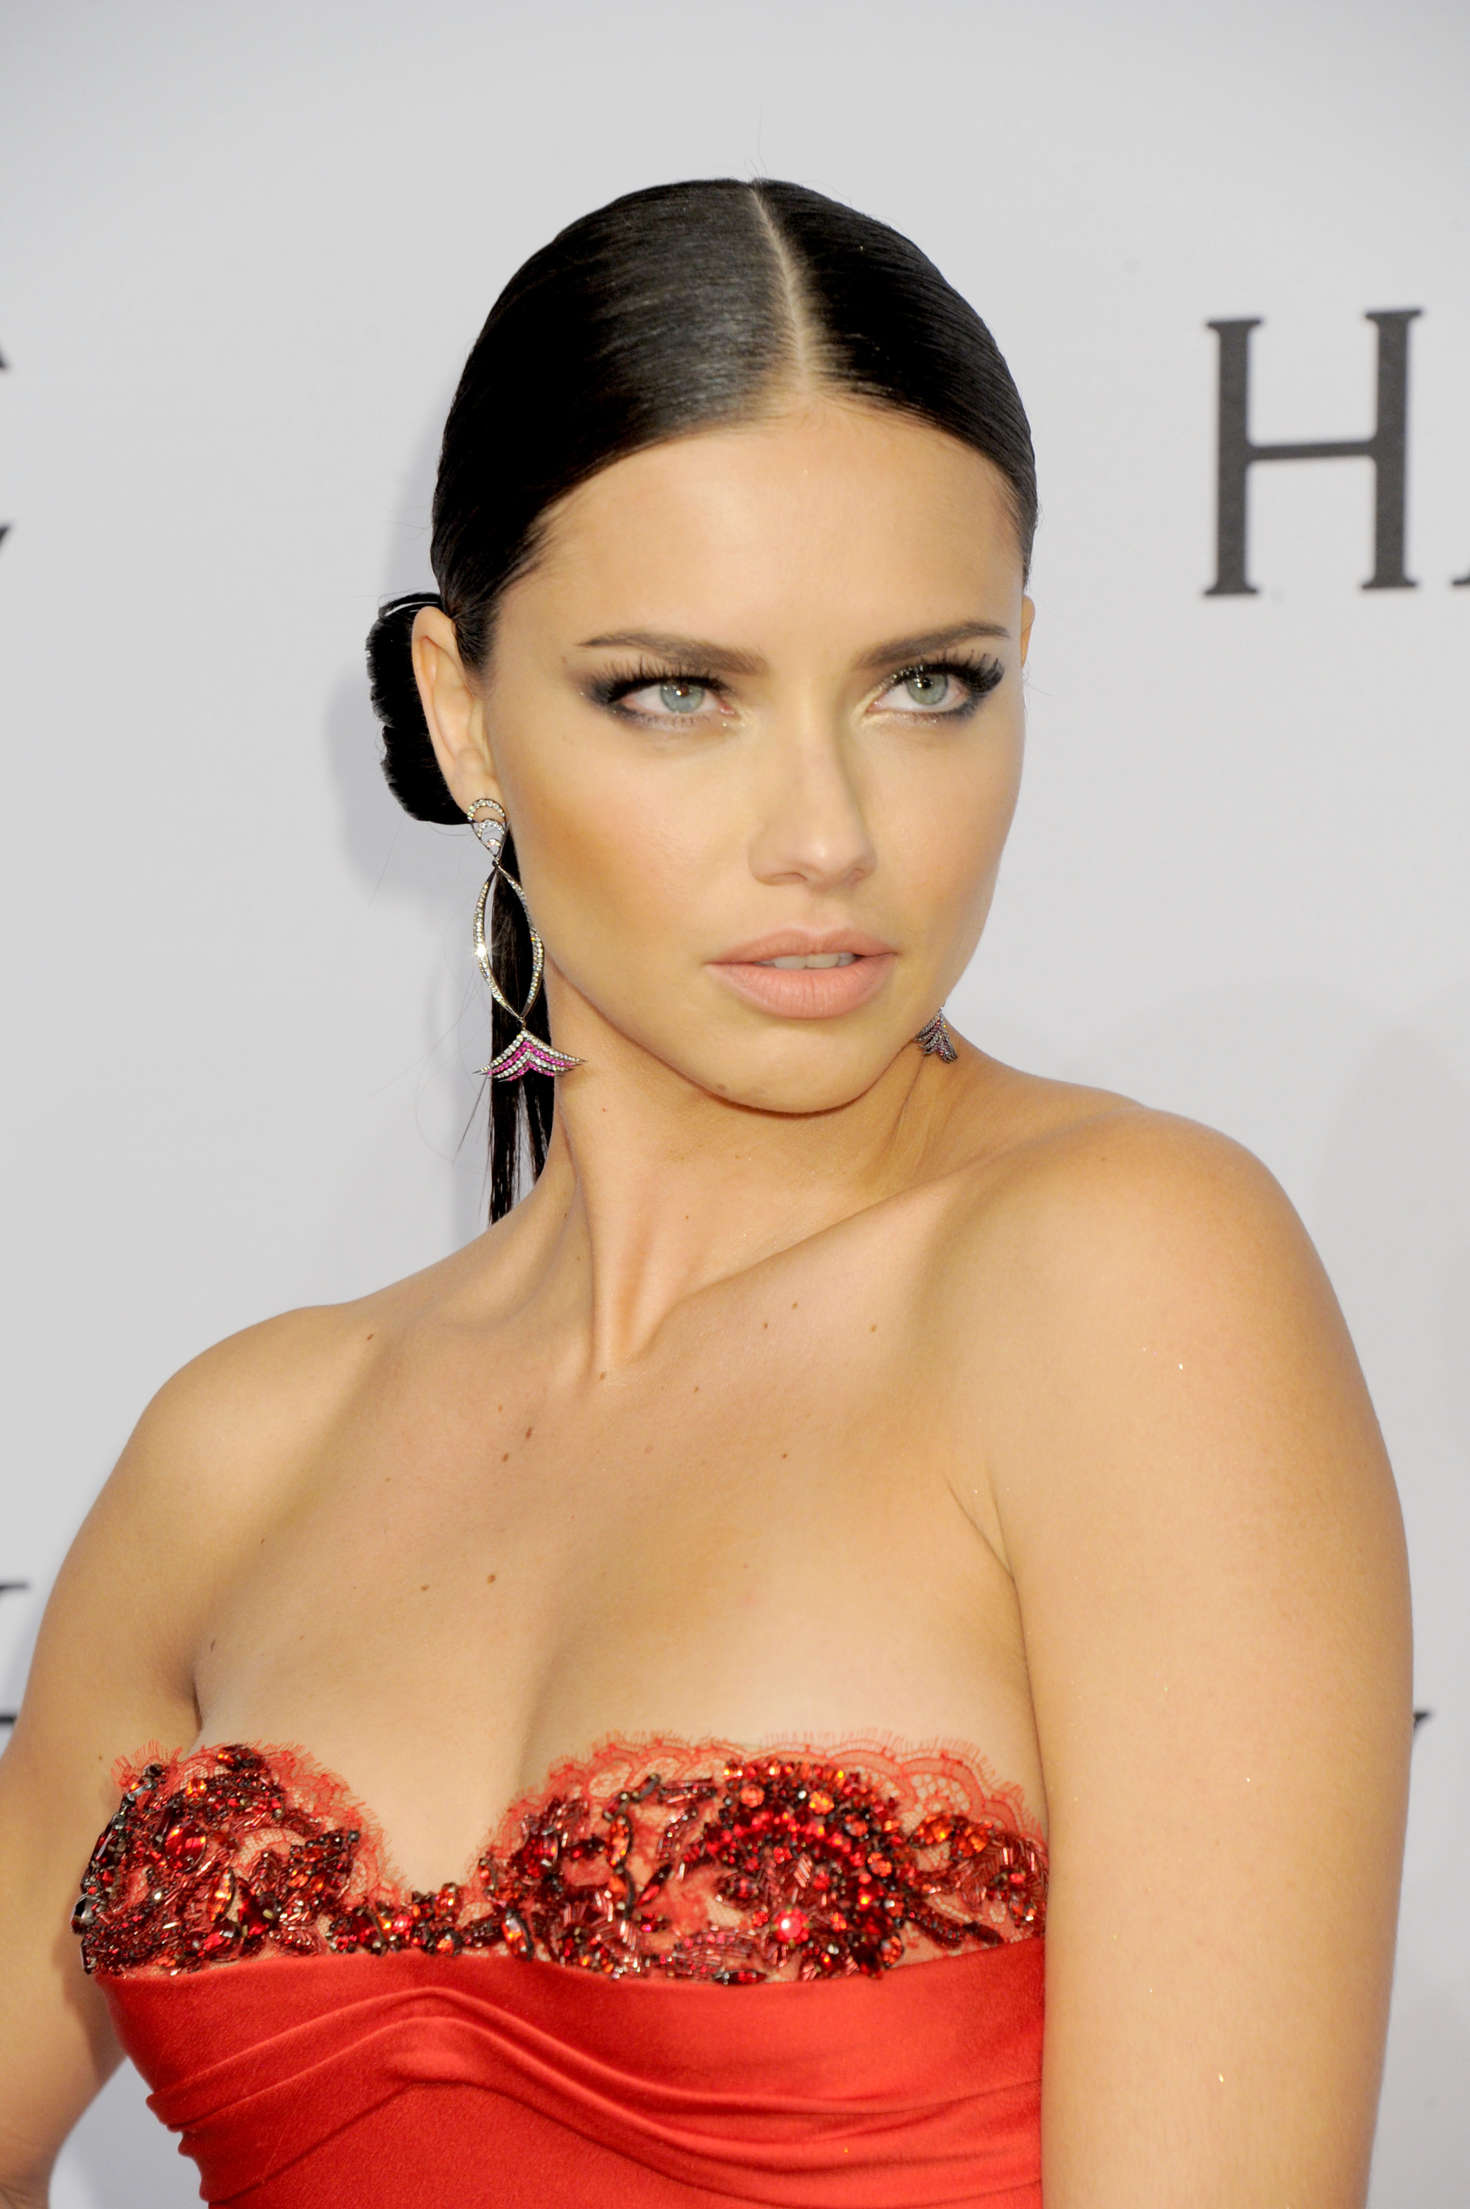 10 Best Cashback And Rewards Apps - Are They Worth It? Adriana lima new photo